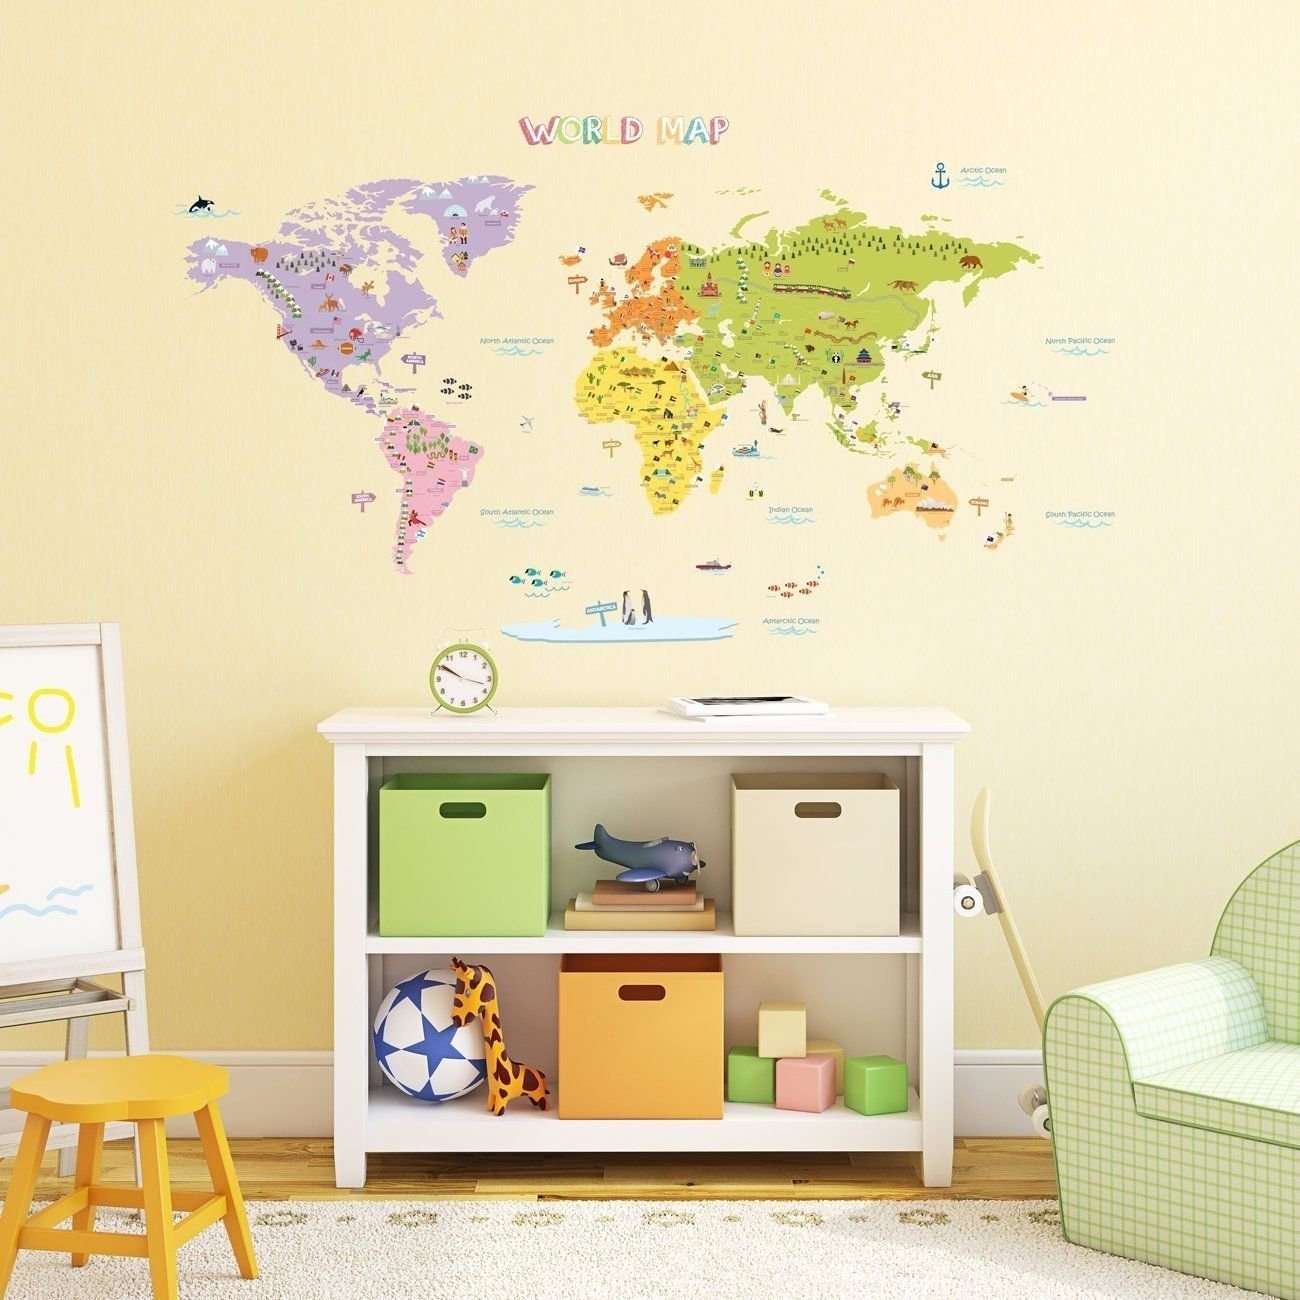 Kids World Map Wall Decals Stickers Great For The Bedroom Or | Etsy Within Wall Art Stickers World Map (Photo 17 of 20)